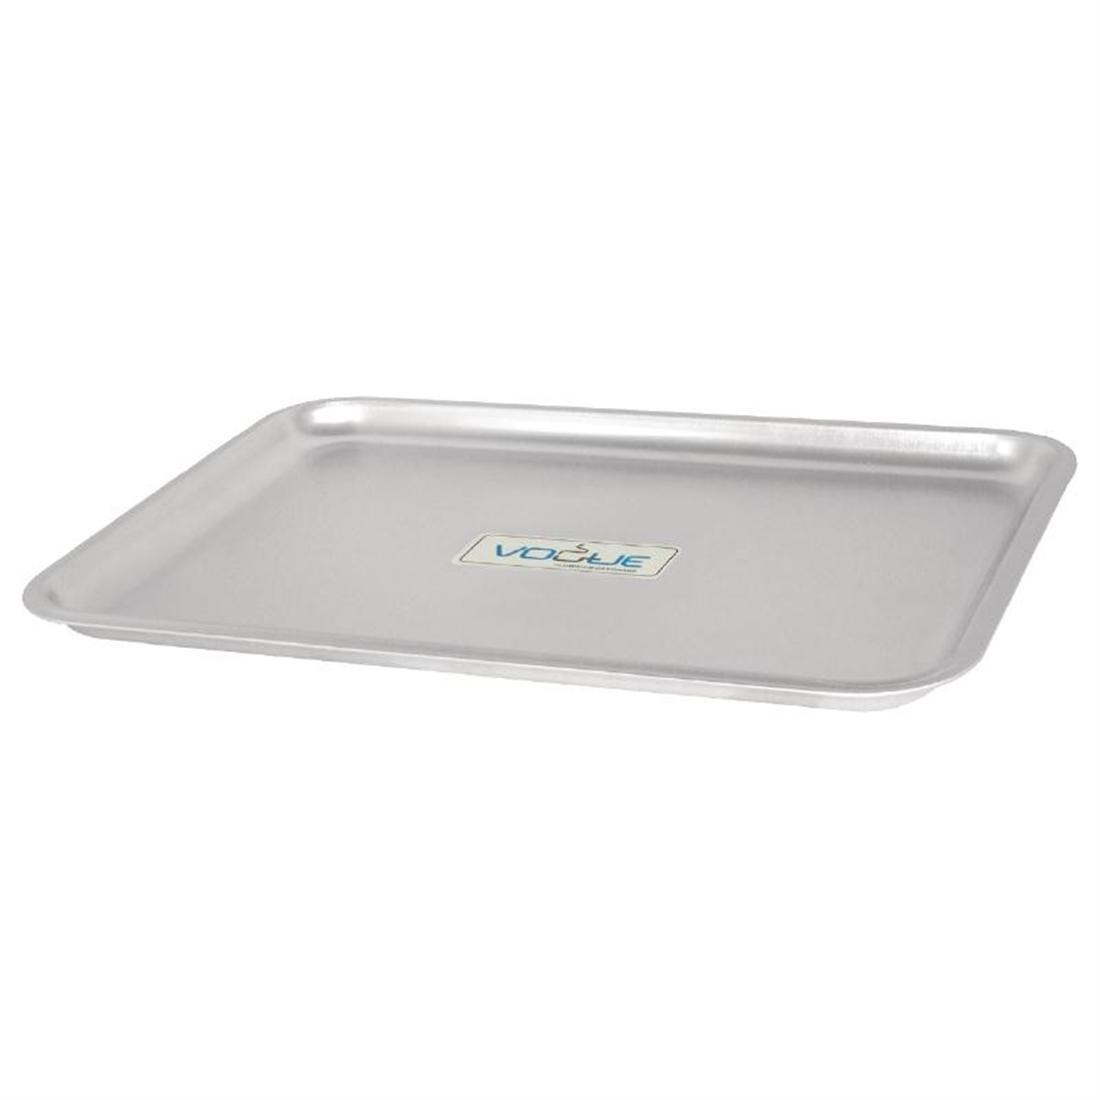 Vogue Aluminium Baking Tray 324 x 222mm - Each - K442